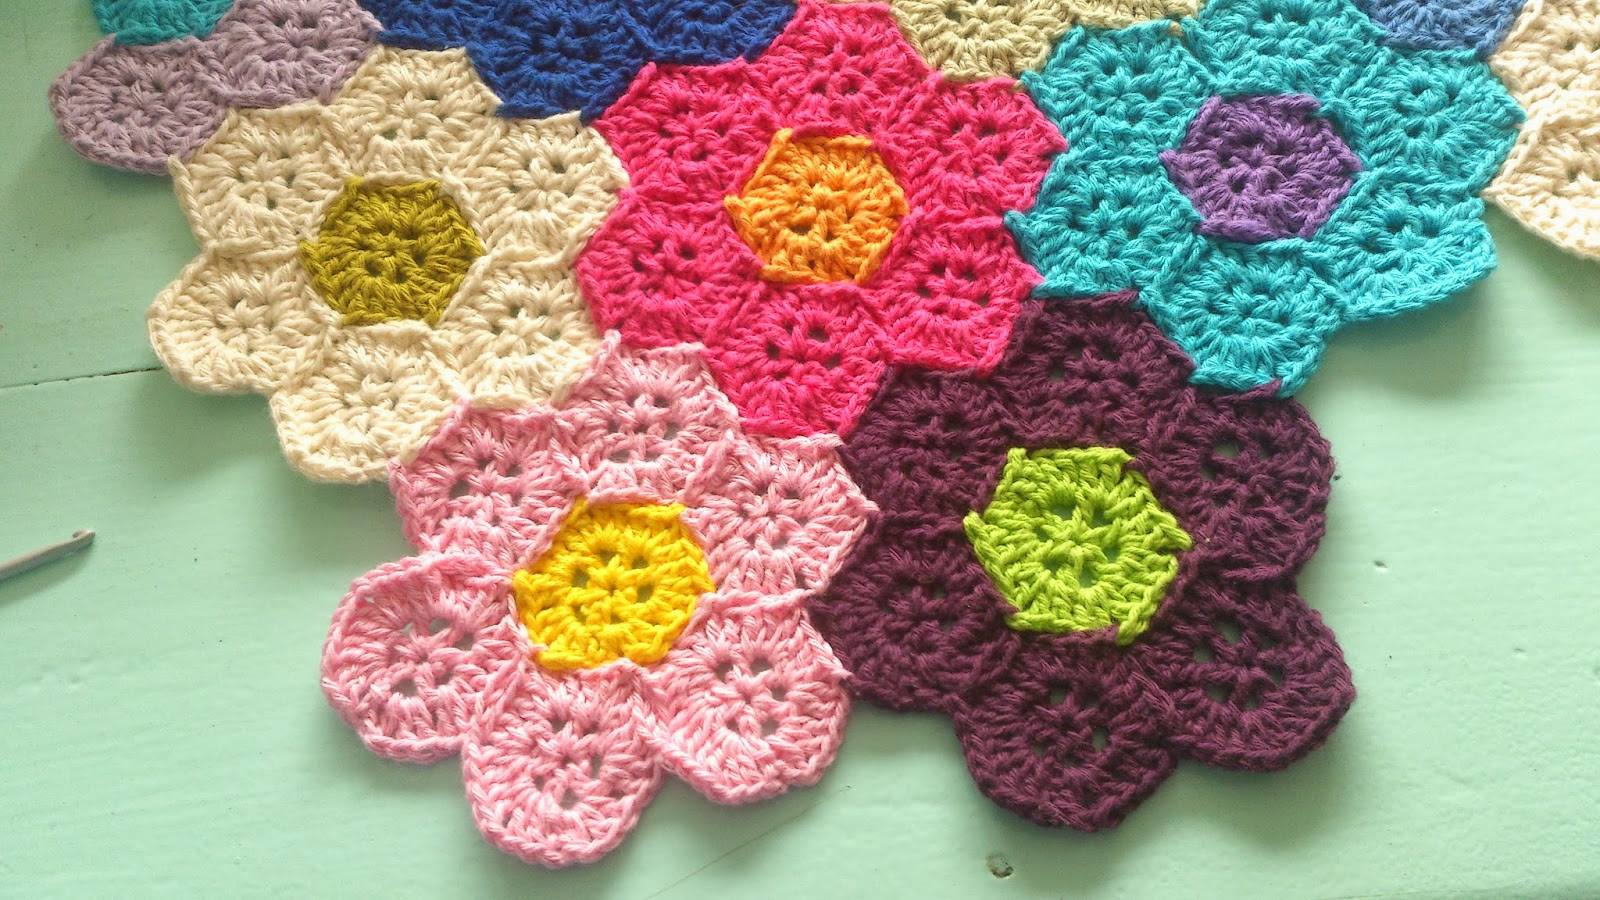 Honeycomb Free Crochet Blanket Pattern ⋆ Crochet Kingdom